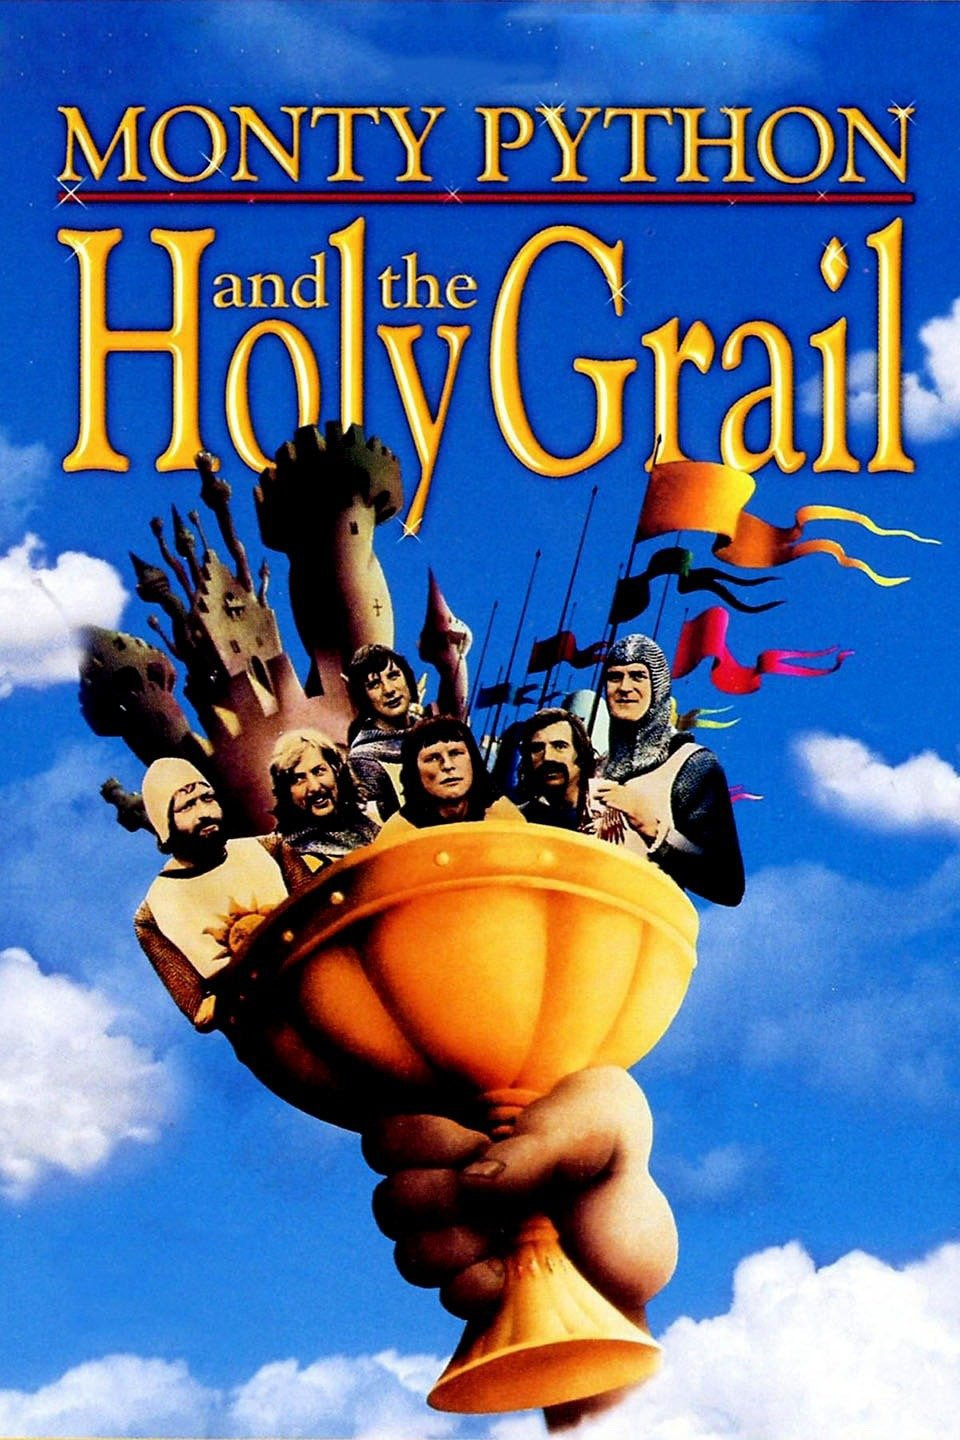 Monty Python and the Holy Grail Vudu HD code